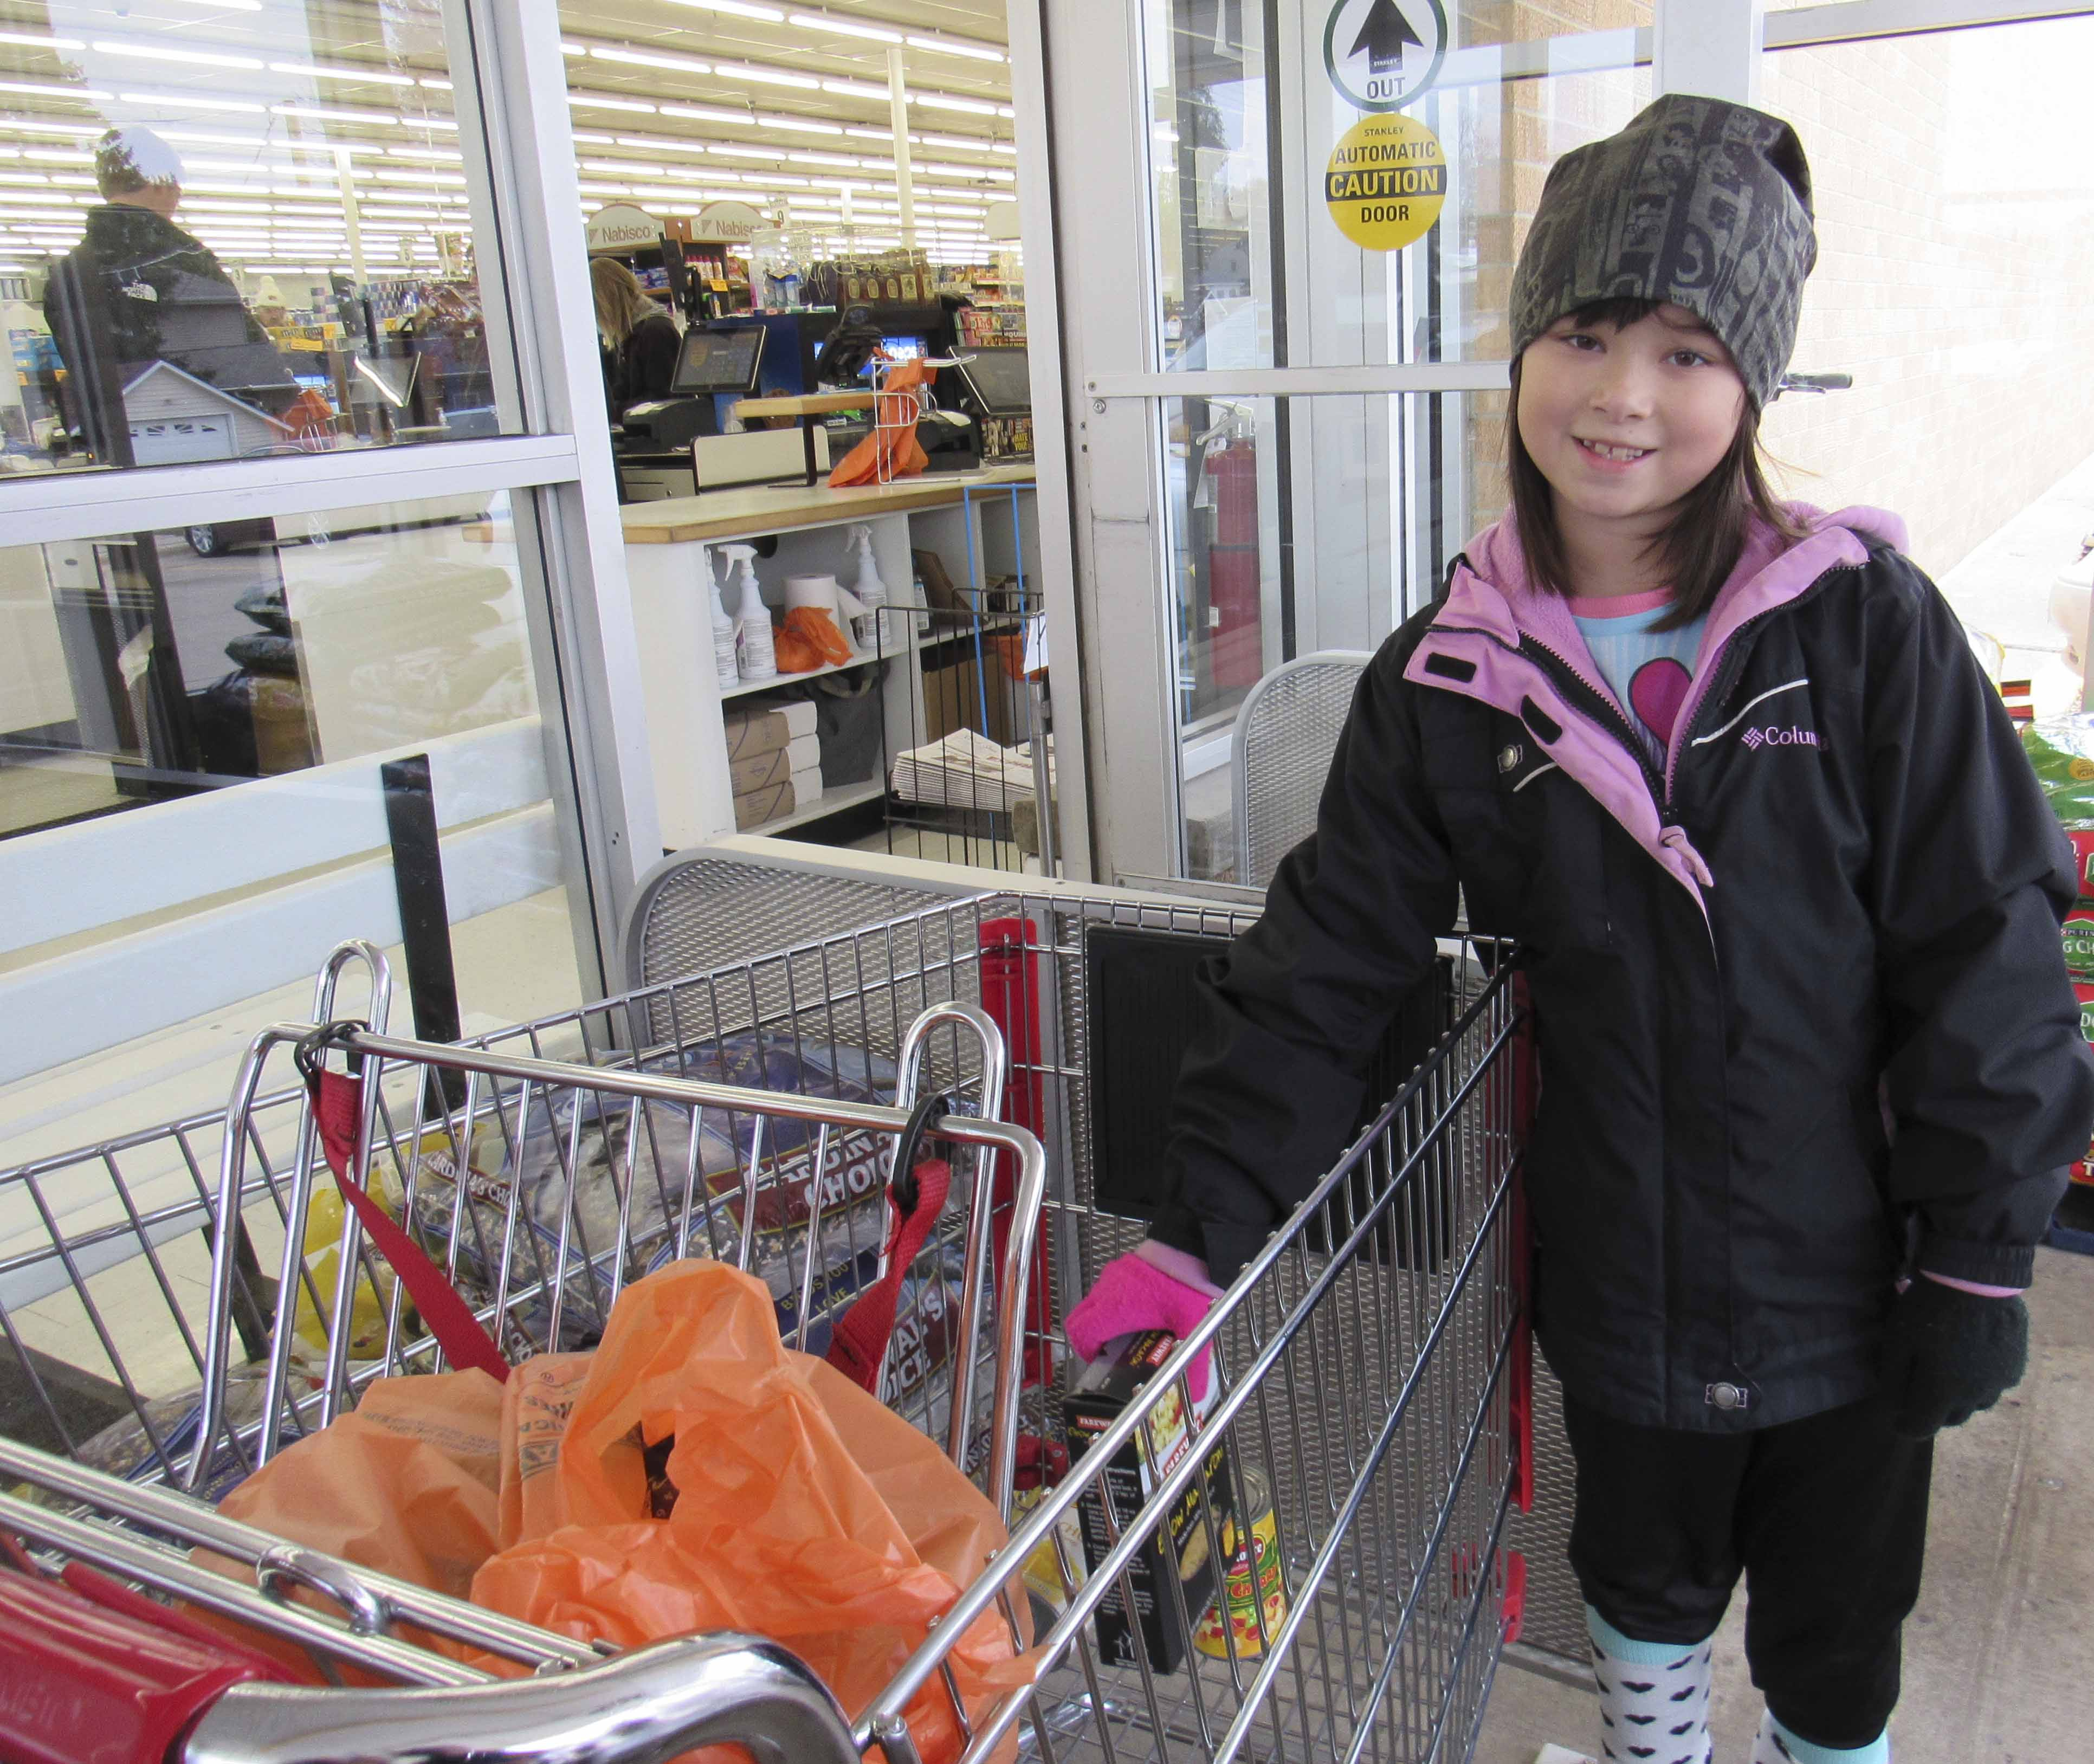 Keira Lee of Monticello donates a box of noodles to the Senior Dining fundraiser. Volunteers and Senior Dining staff were present at both the Monticello and Anamosa Fareway Stores collecting donations for the countywide program. (Photo by Kim Brooks)